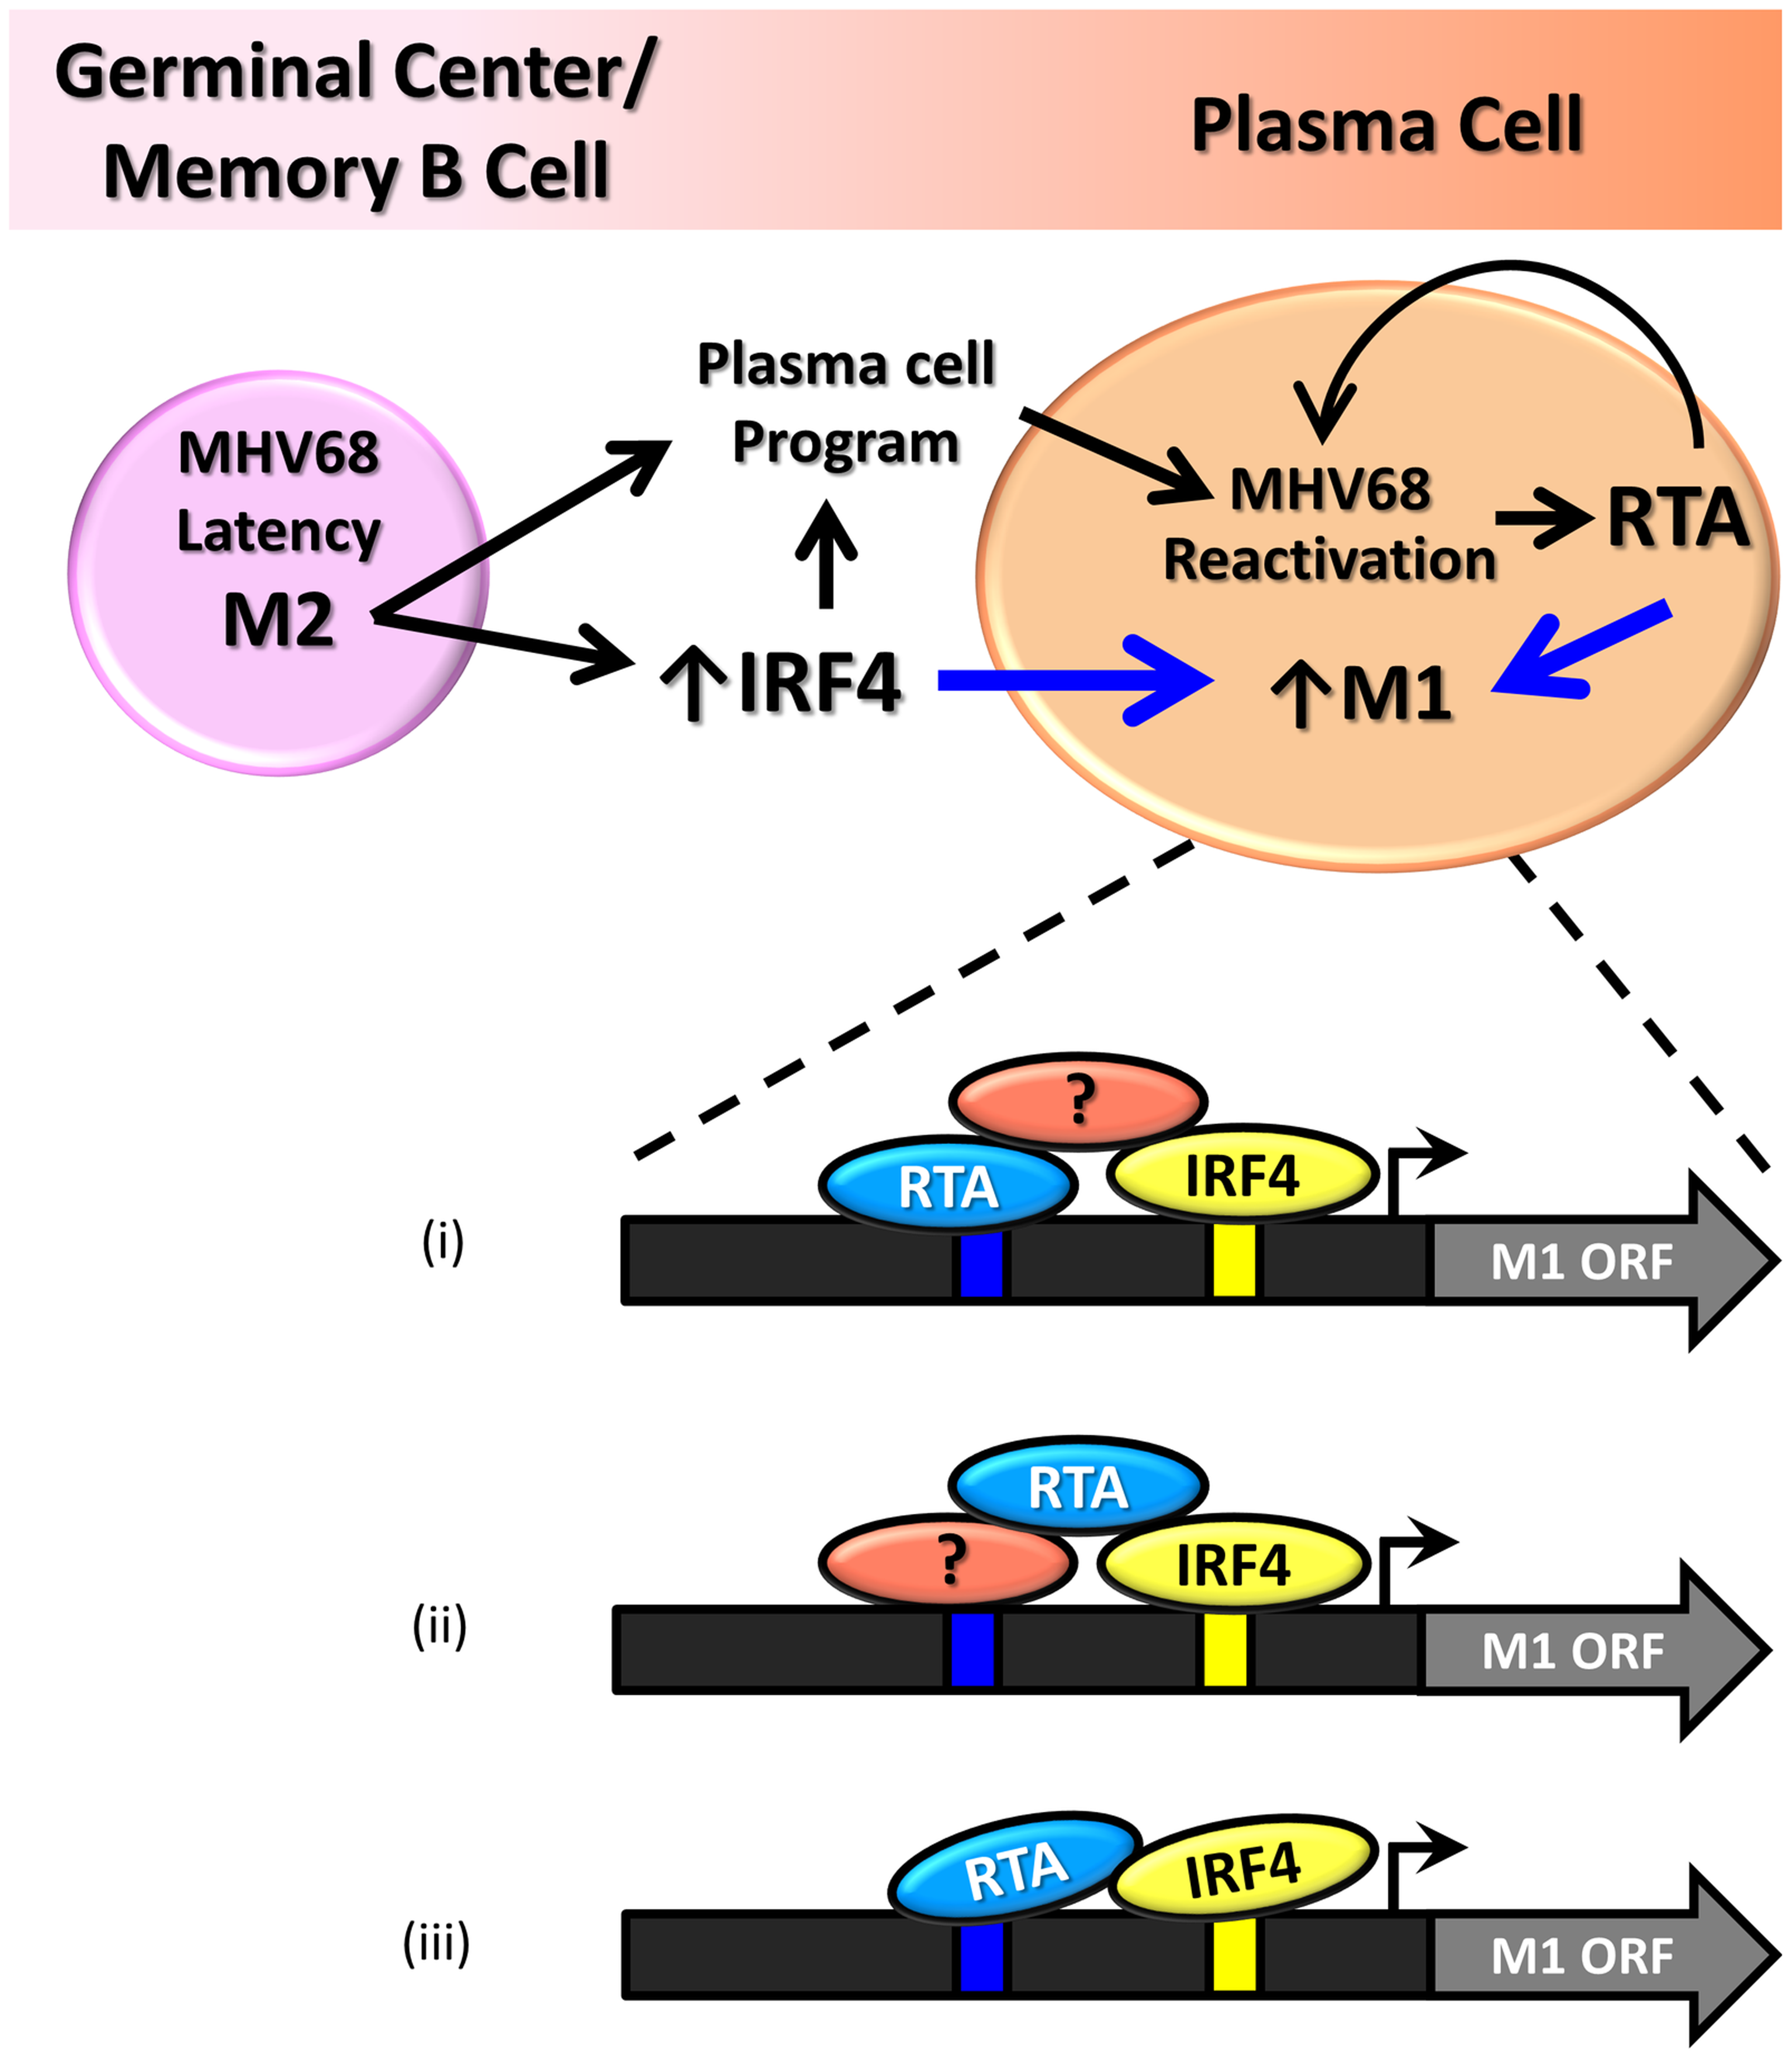 Model of M1 gene regulation upon differentiation of latently infected B cells to plasma cells and ensuing virus reactivation.